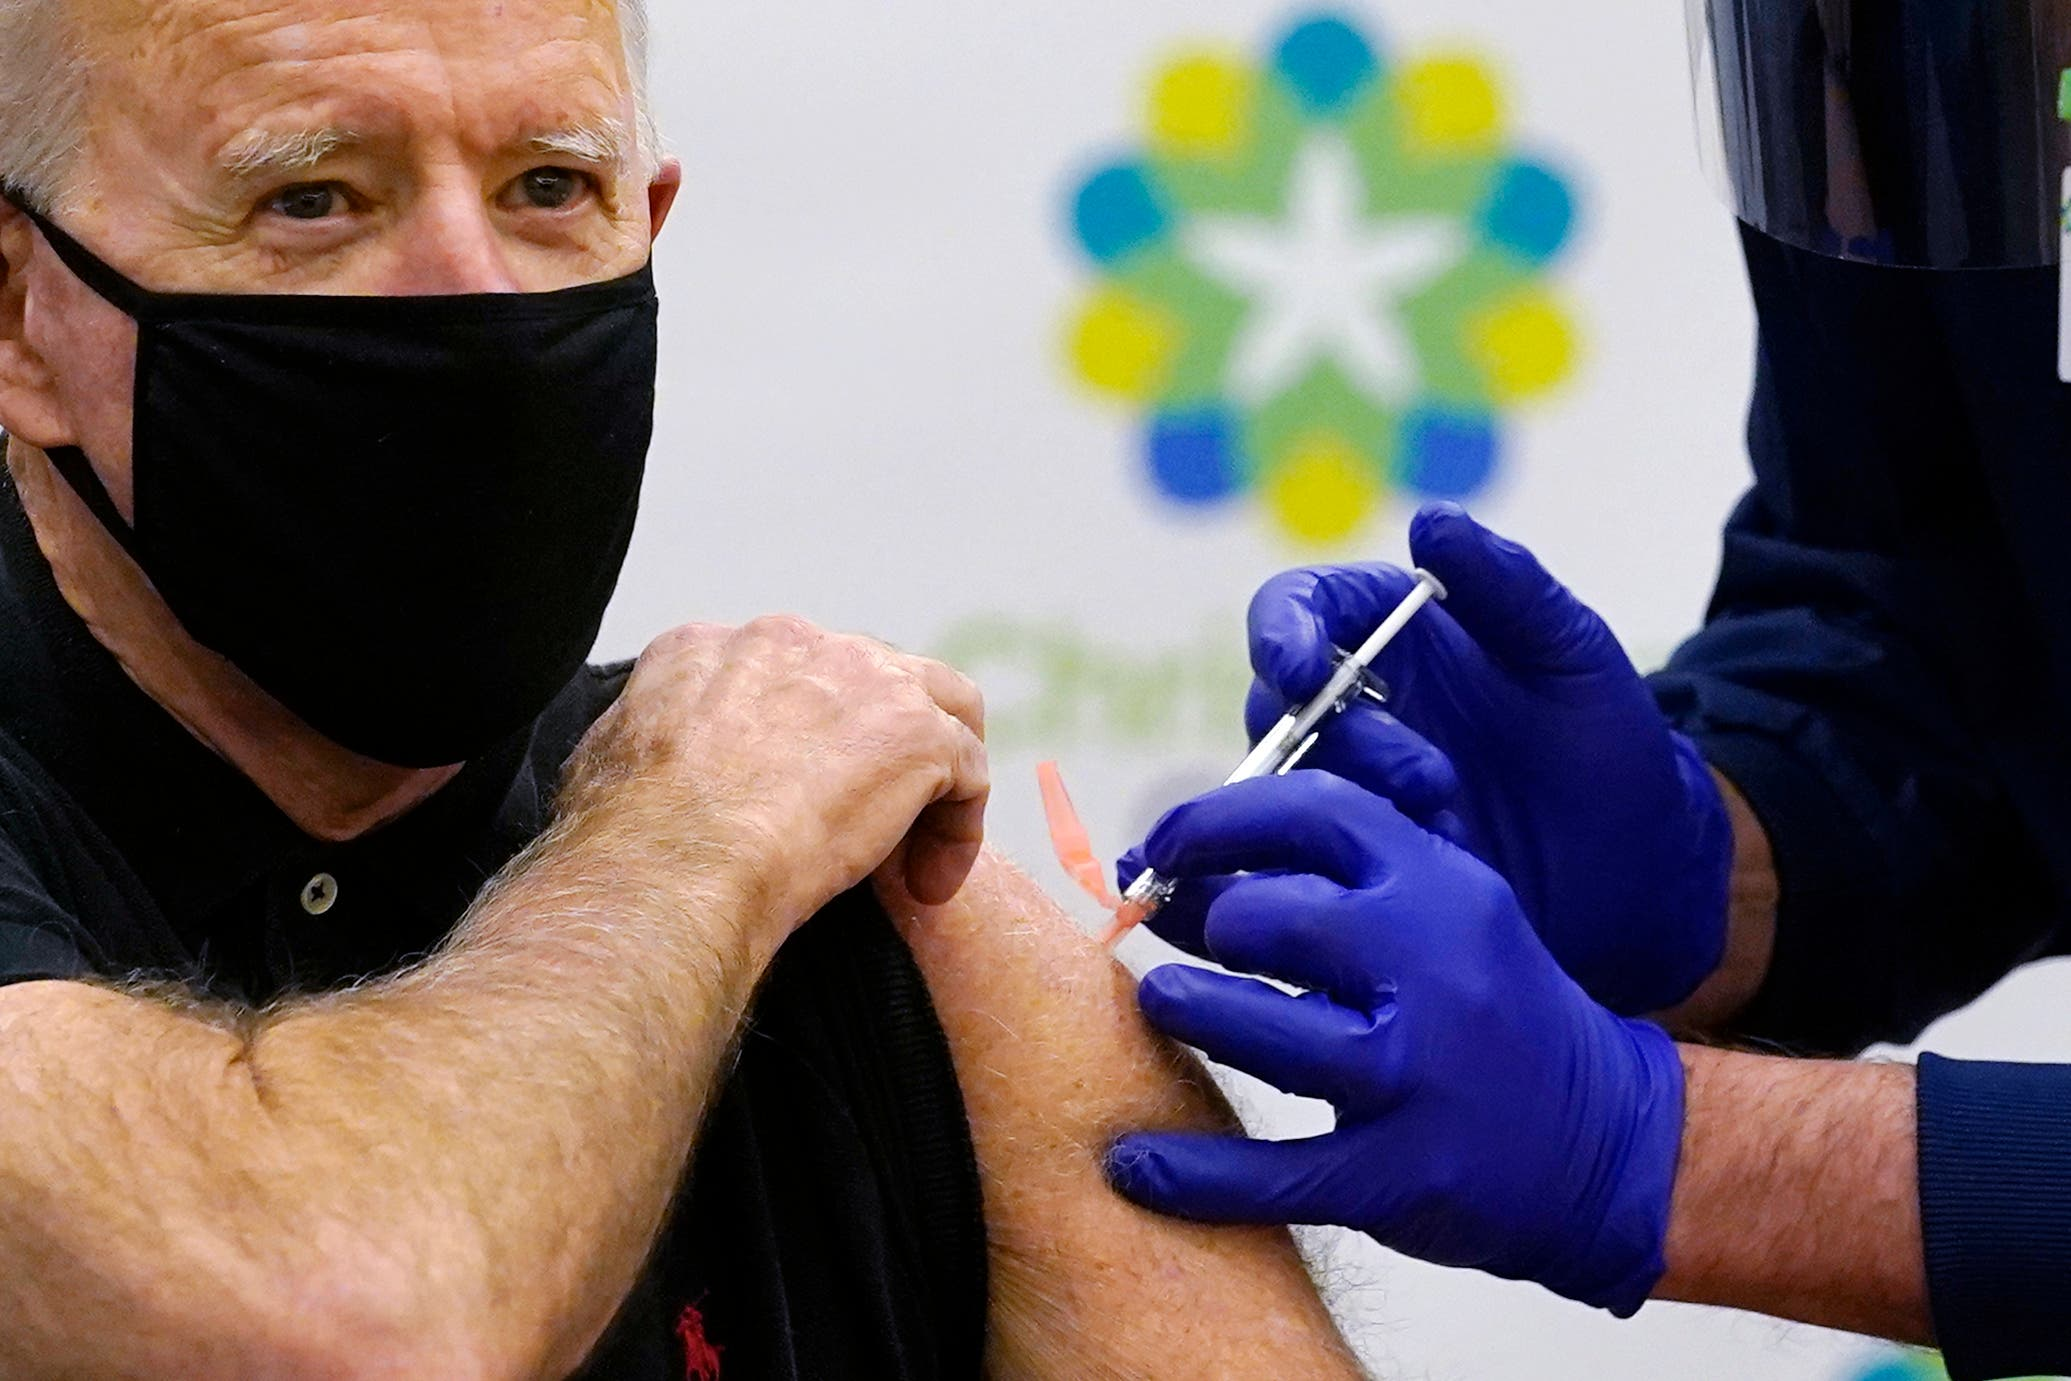 President-elect Joe Biden receives his second dose of the coronavirus vaccine at ChristianaCare Christiana Hospital in Newark, Del., Monday, Jan. 11, 2021. The vaccine is being administered by Chief Nurse Executive Ric Cuming. (AP)